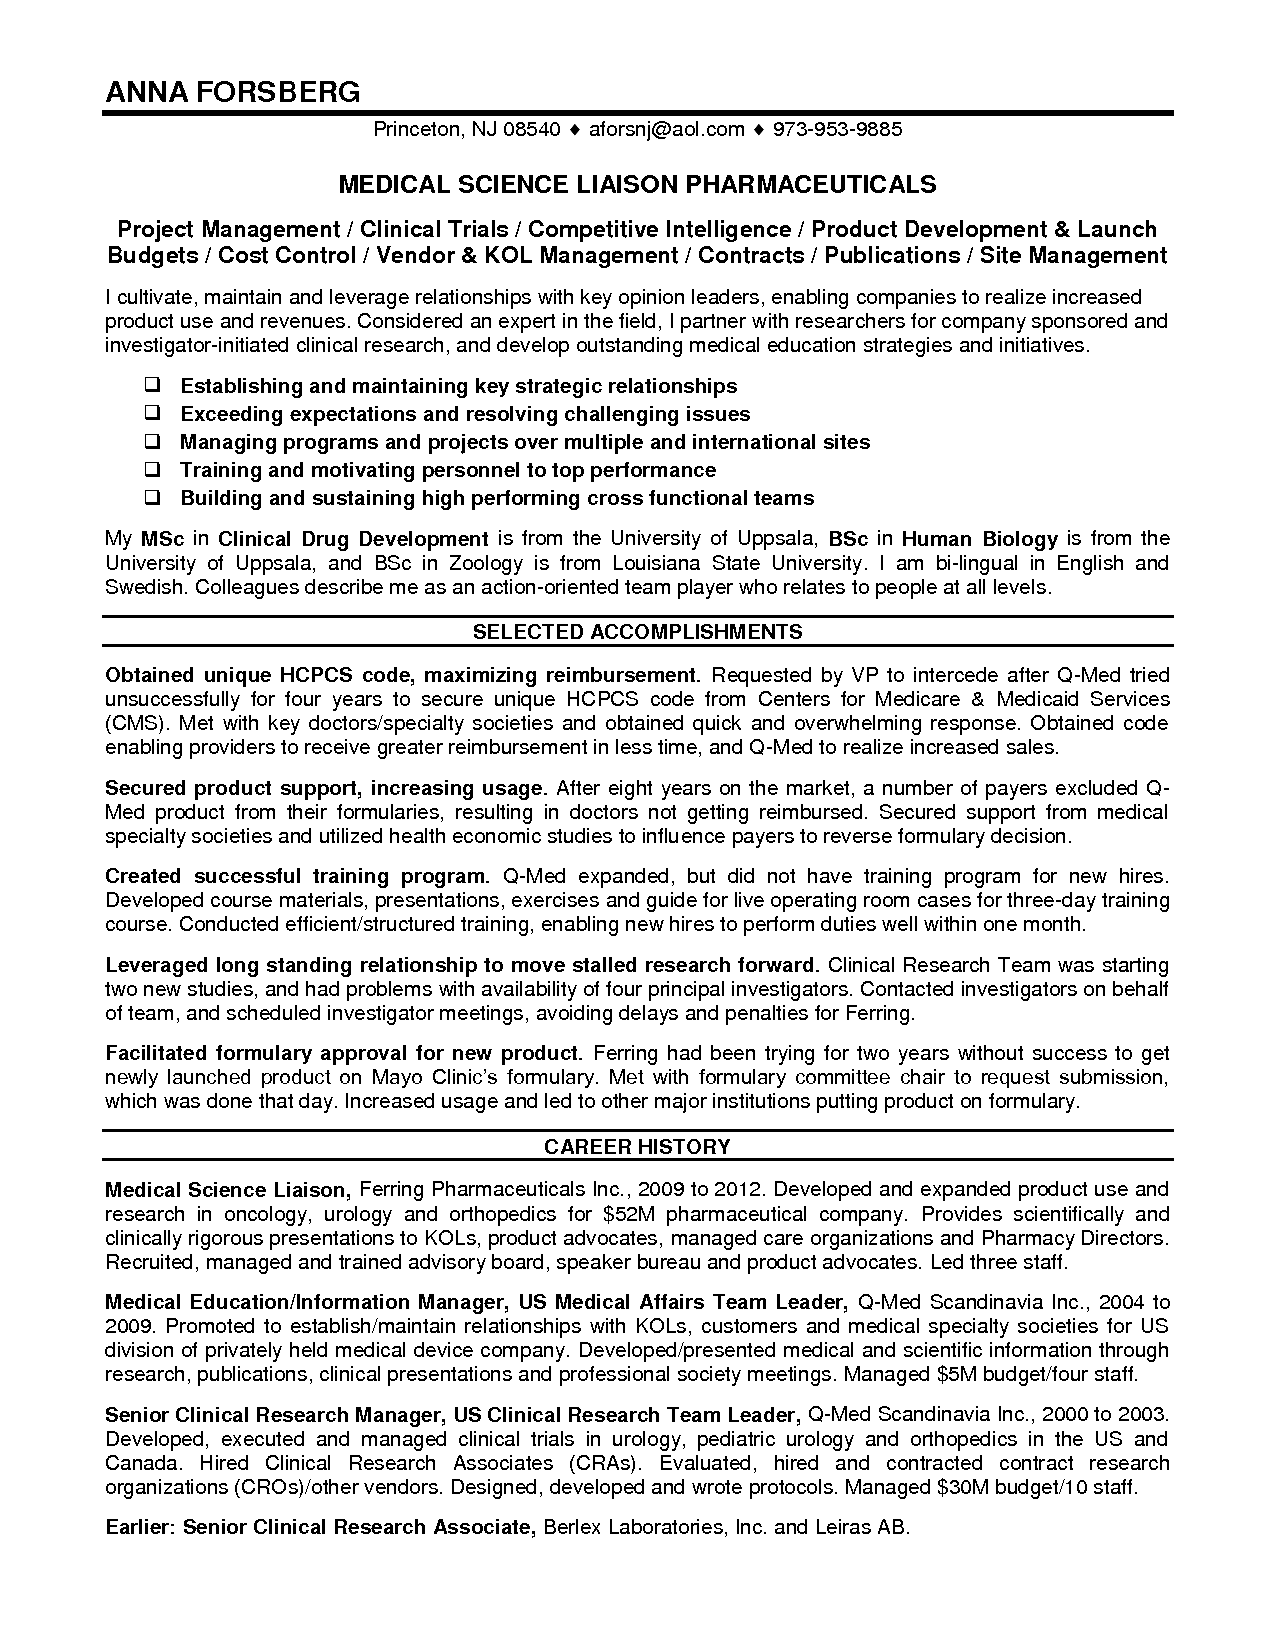 Sample Resume Medical Esthetician Annotated Bibliography Sample Http Www Jobresume Website Sample Resume M Job Resume Format Job Resume Job Resume Template